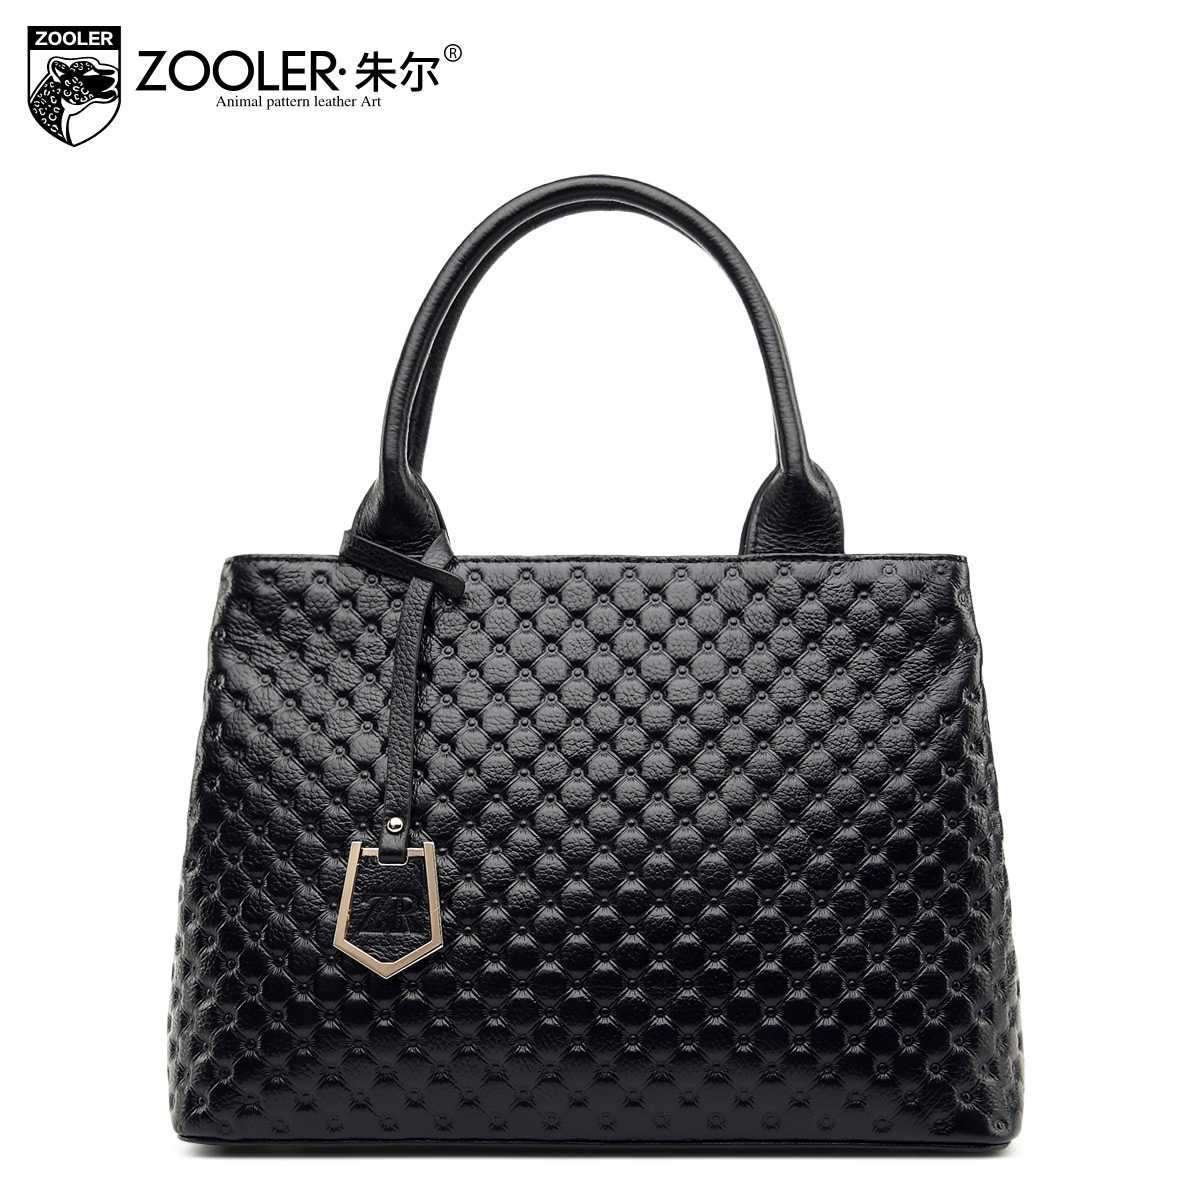 2015 women's genuine leather handbag first layer of cowhide women's bags all-match fashion female handbag